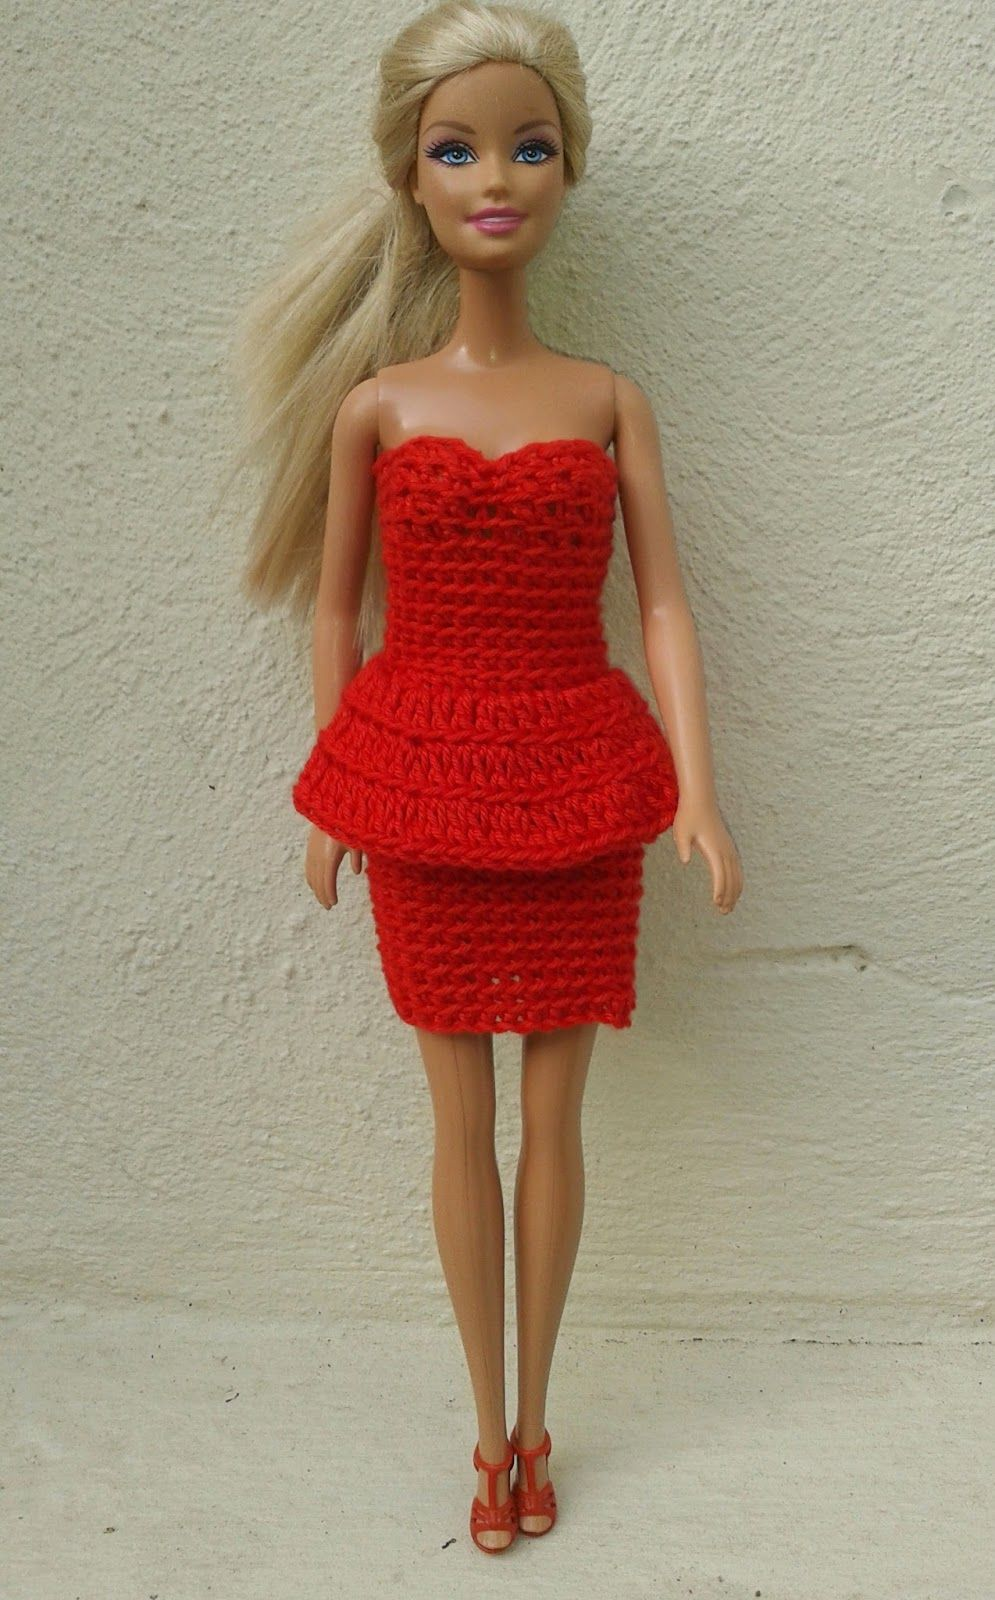 A simple crochet pattern using basic stitches for 3 styles of red a simple crochet pattern using basic stitches for 3 styles of red dress fluffy neckline peplum bankloansurffo Image collections